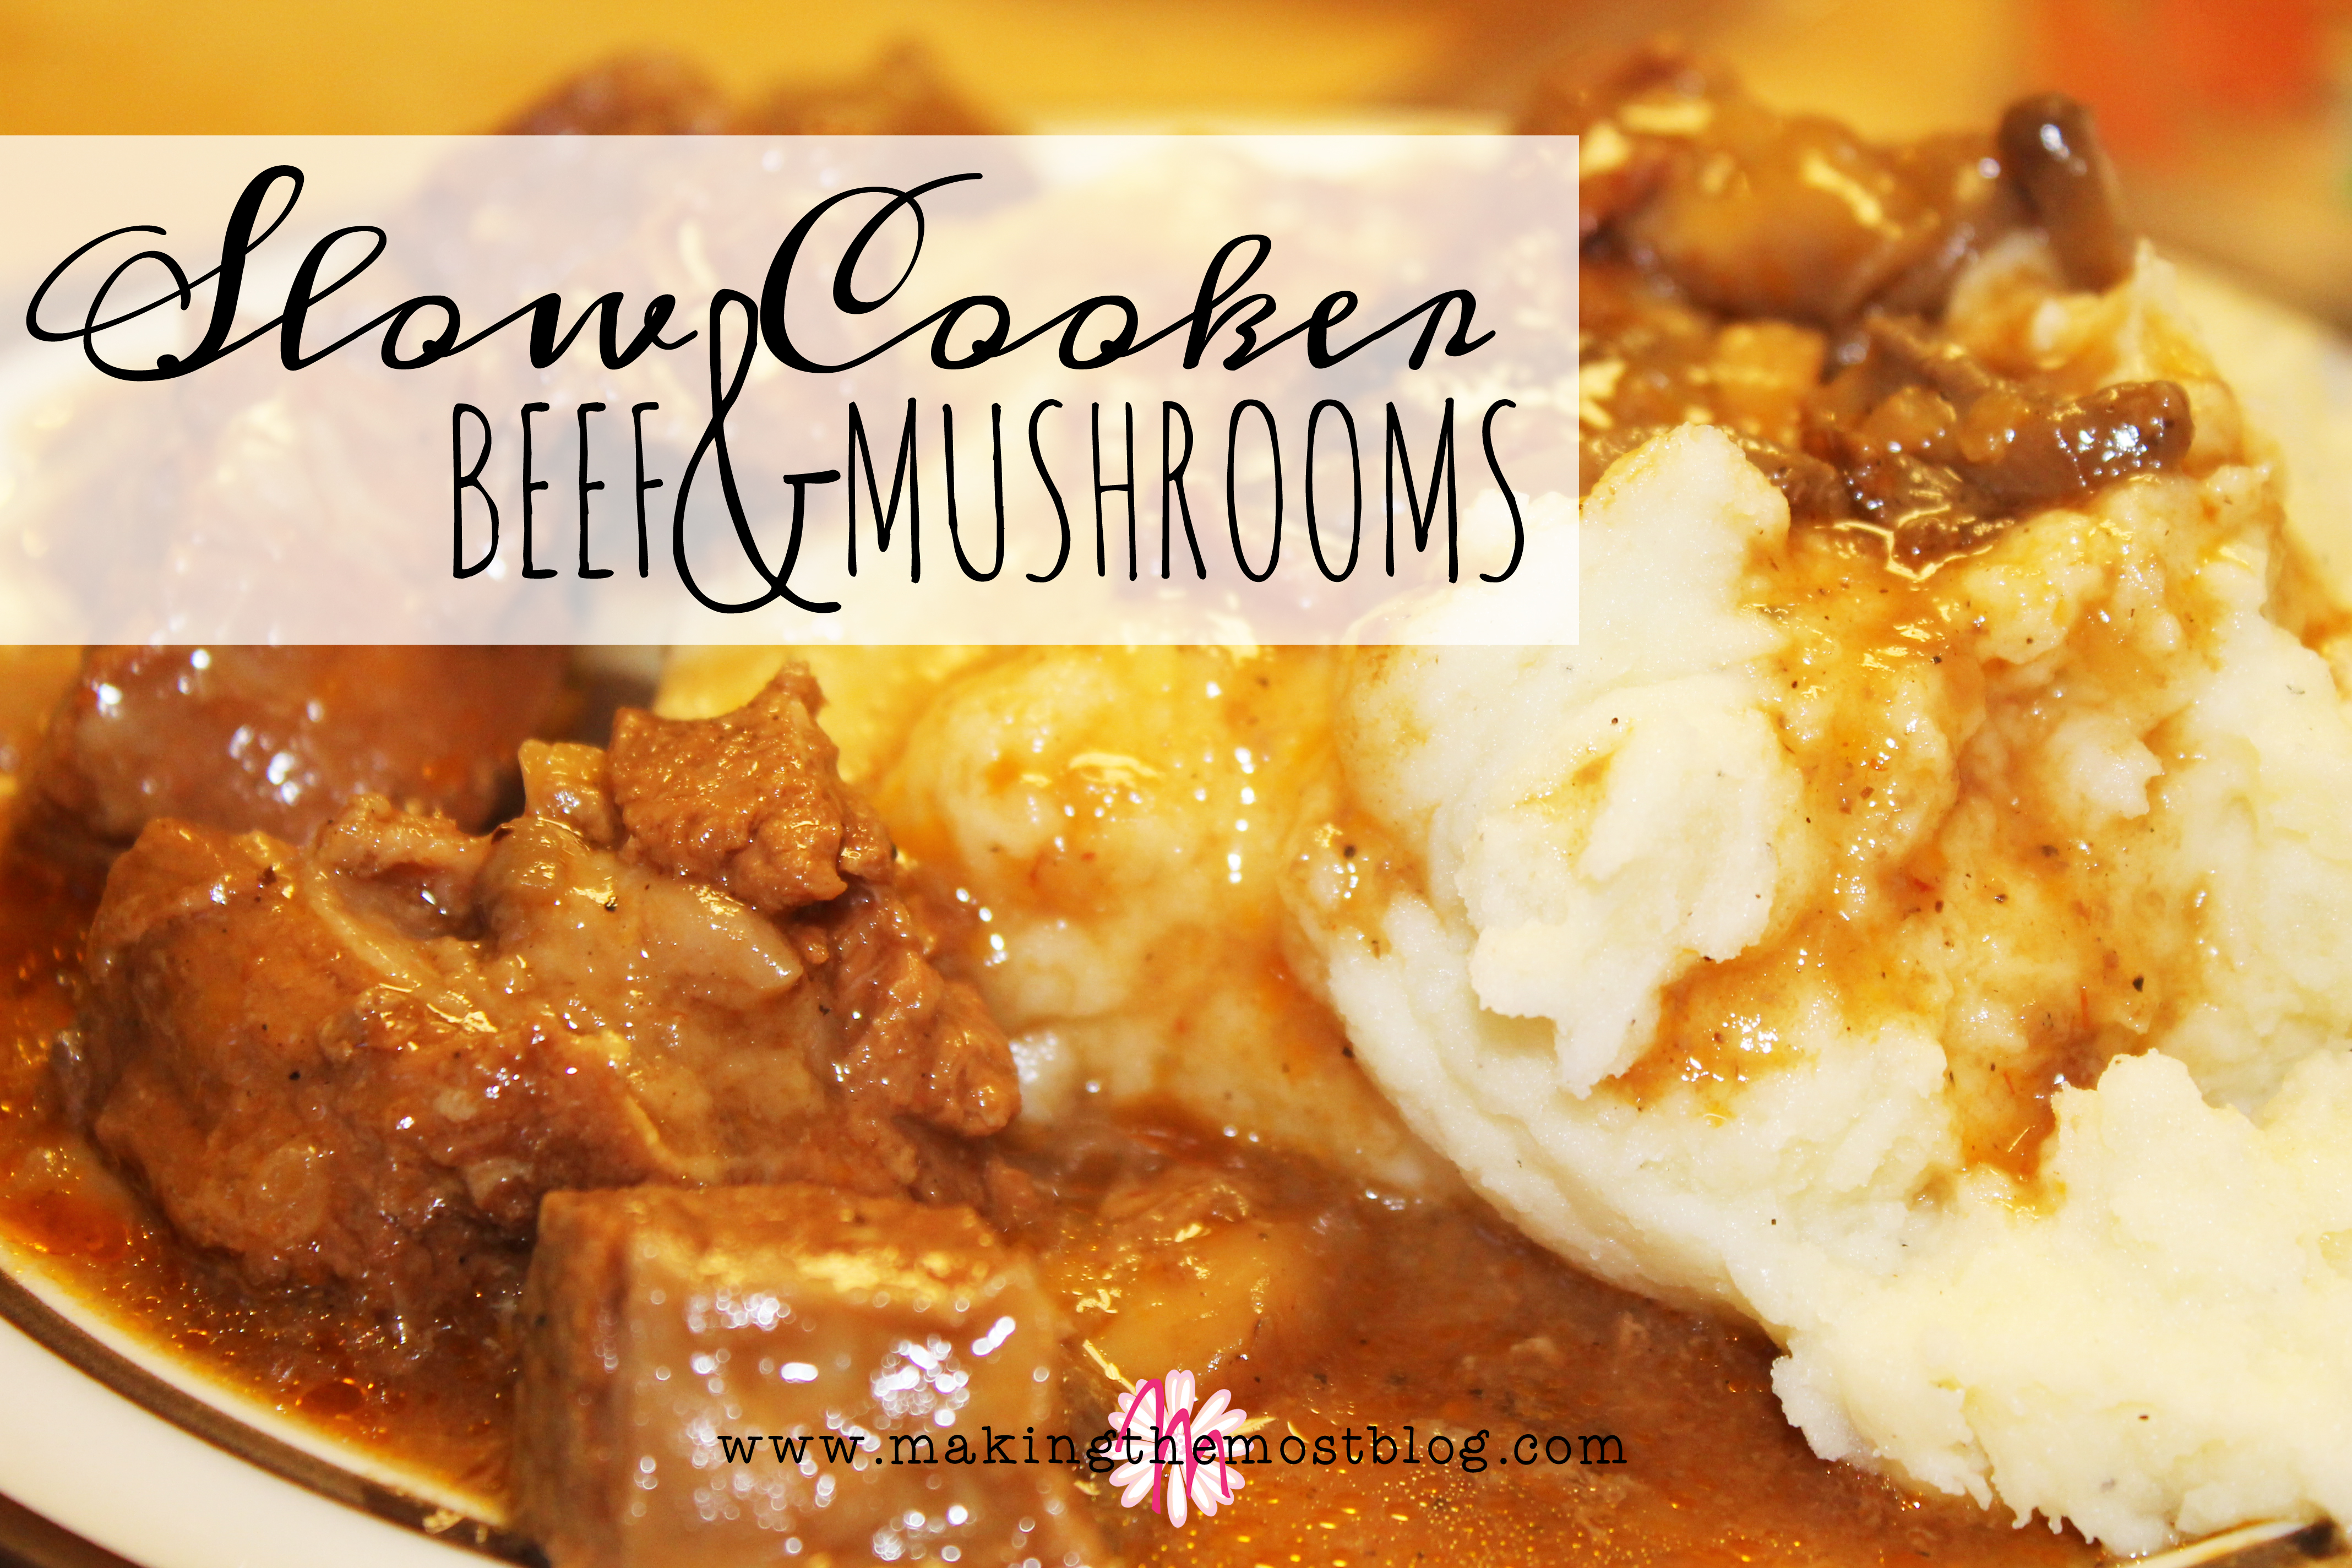 Slow Cooker Beef & Mushroom Recipe | Making the Most Blog